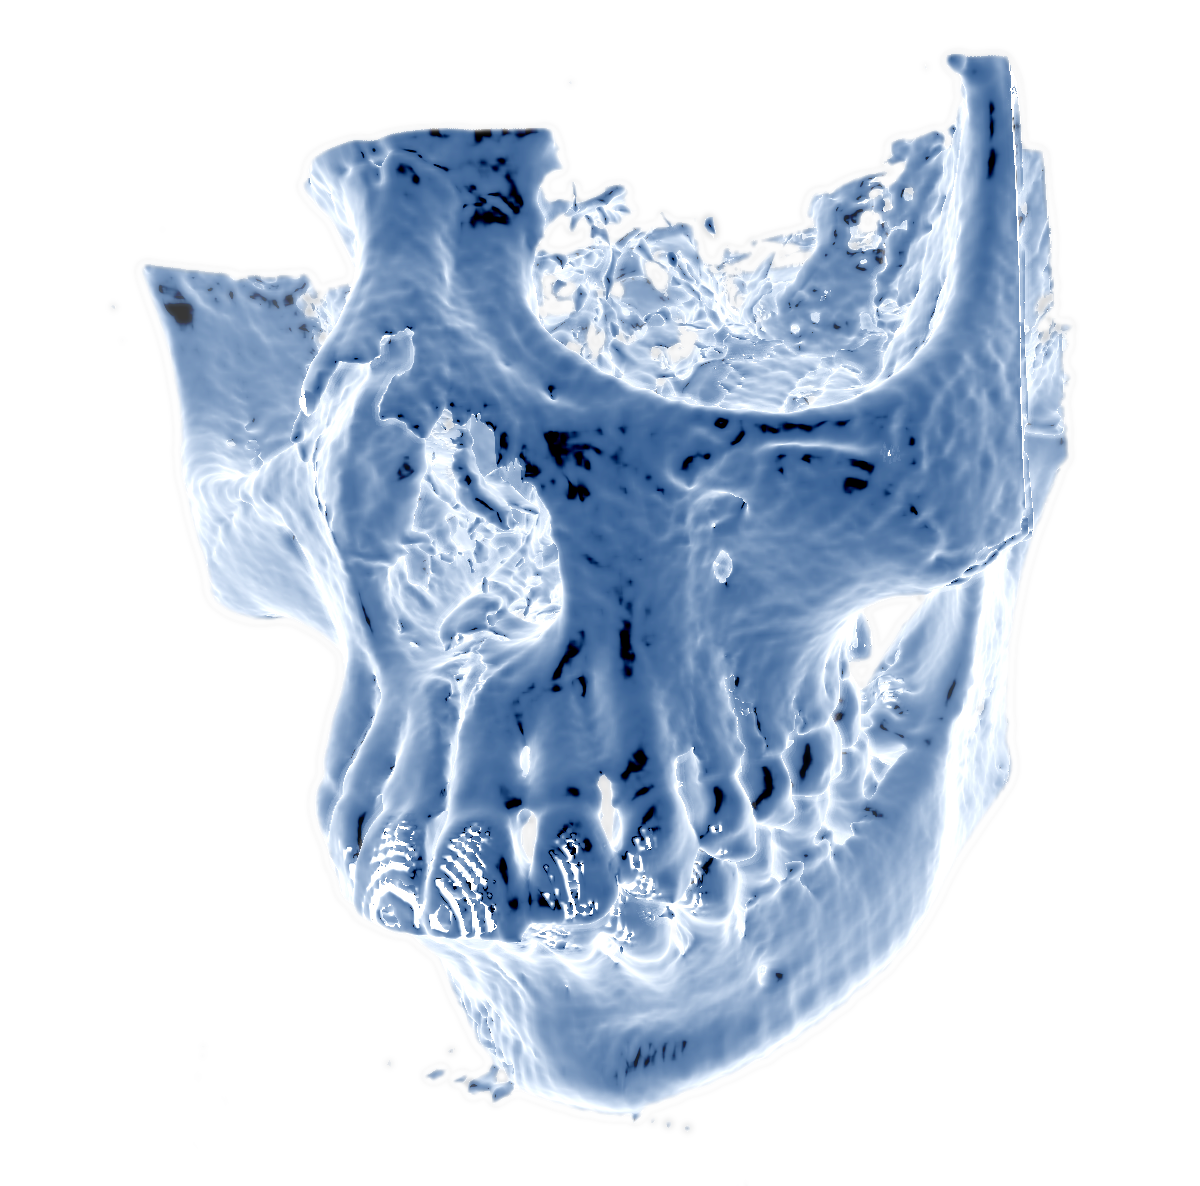 Volumetric visualization of CT scan of human scull.